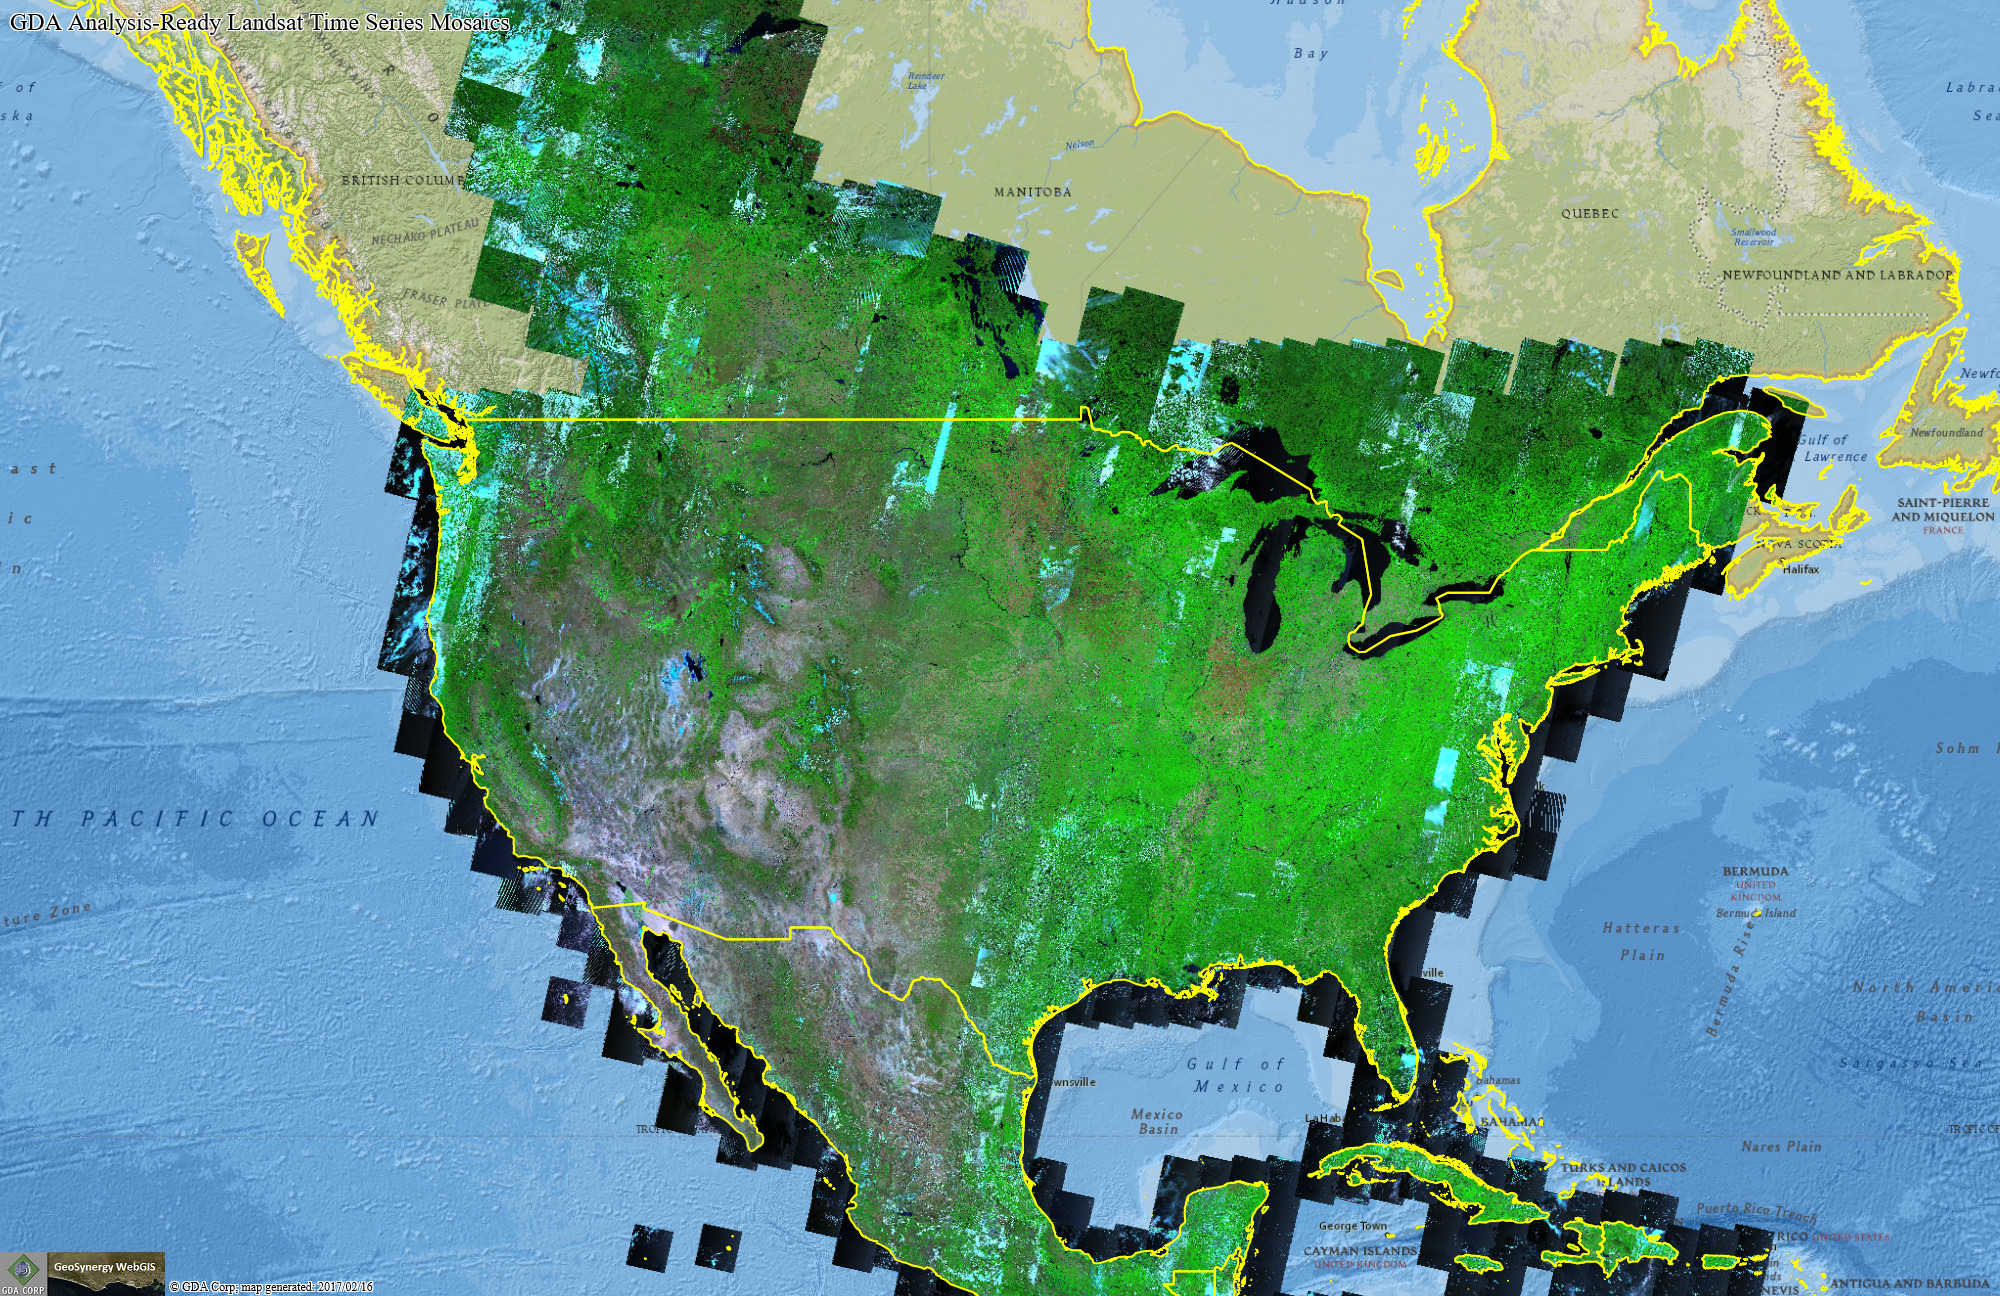 GDA analysis-ready Landsat time series mosaics of the United States.